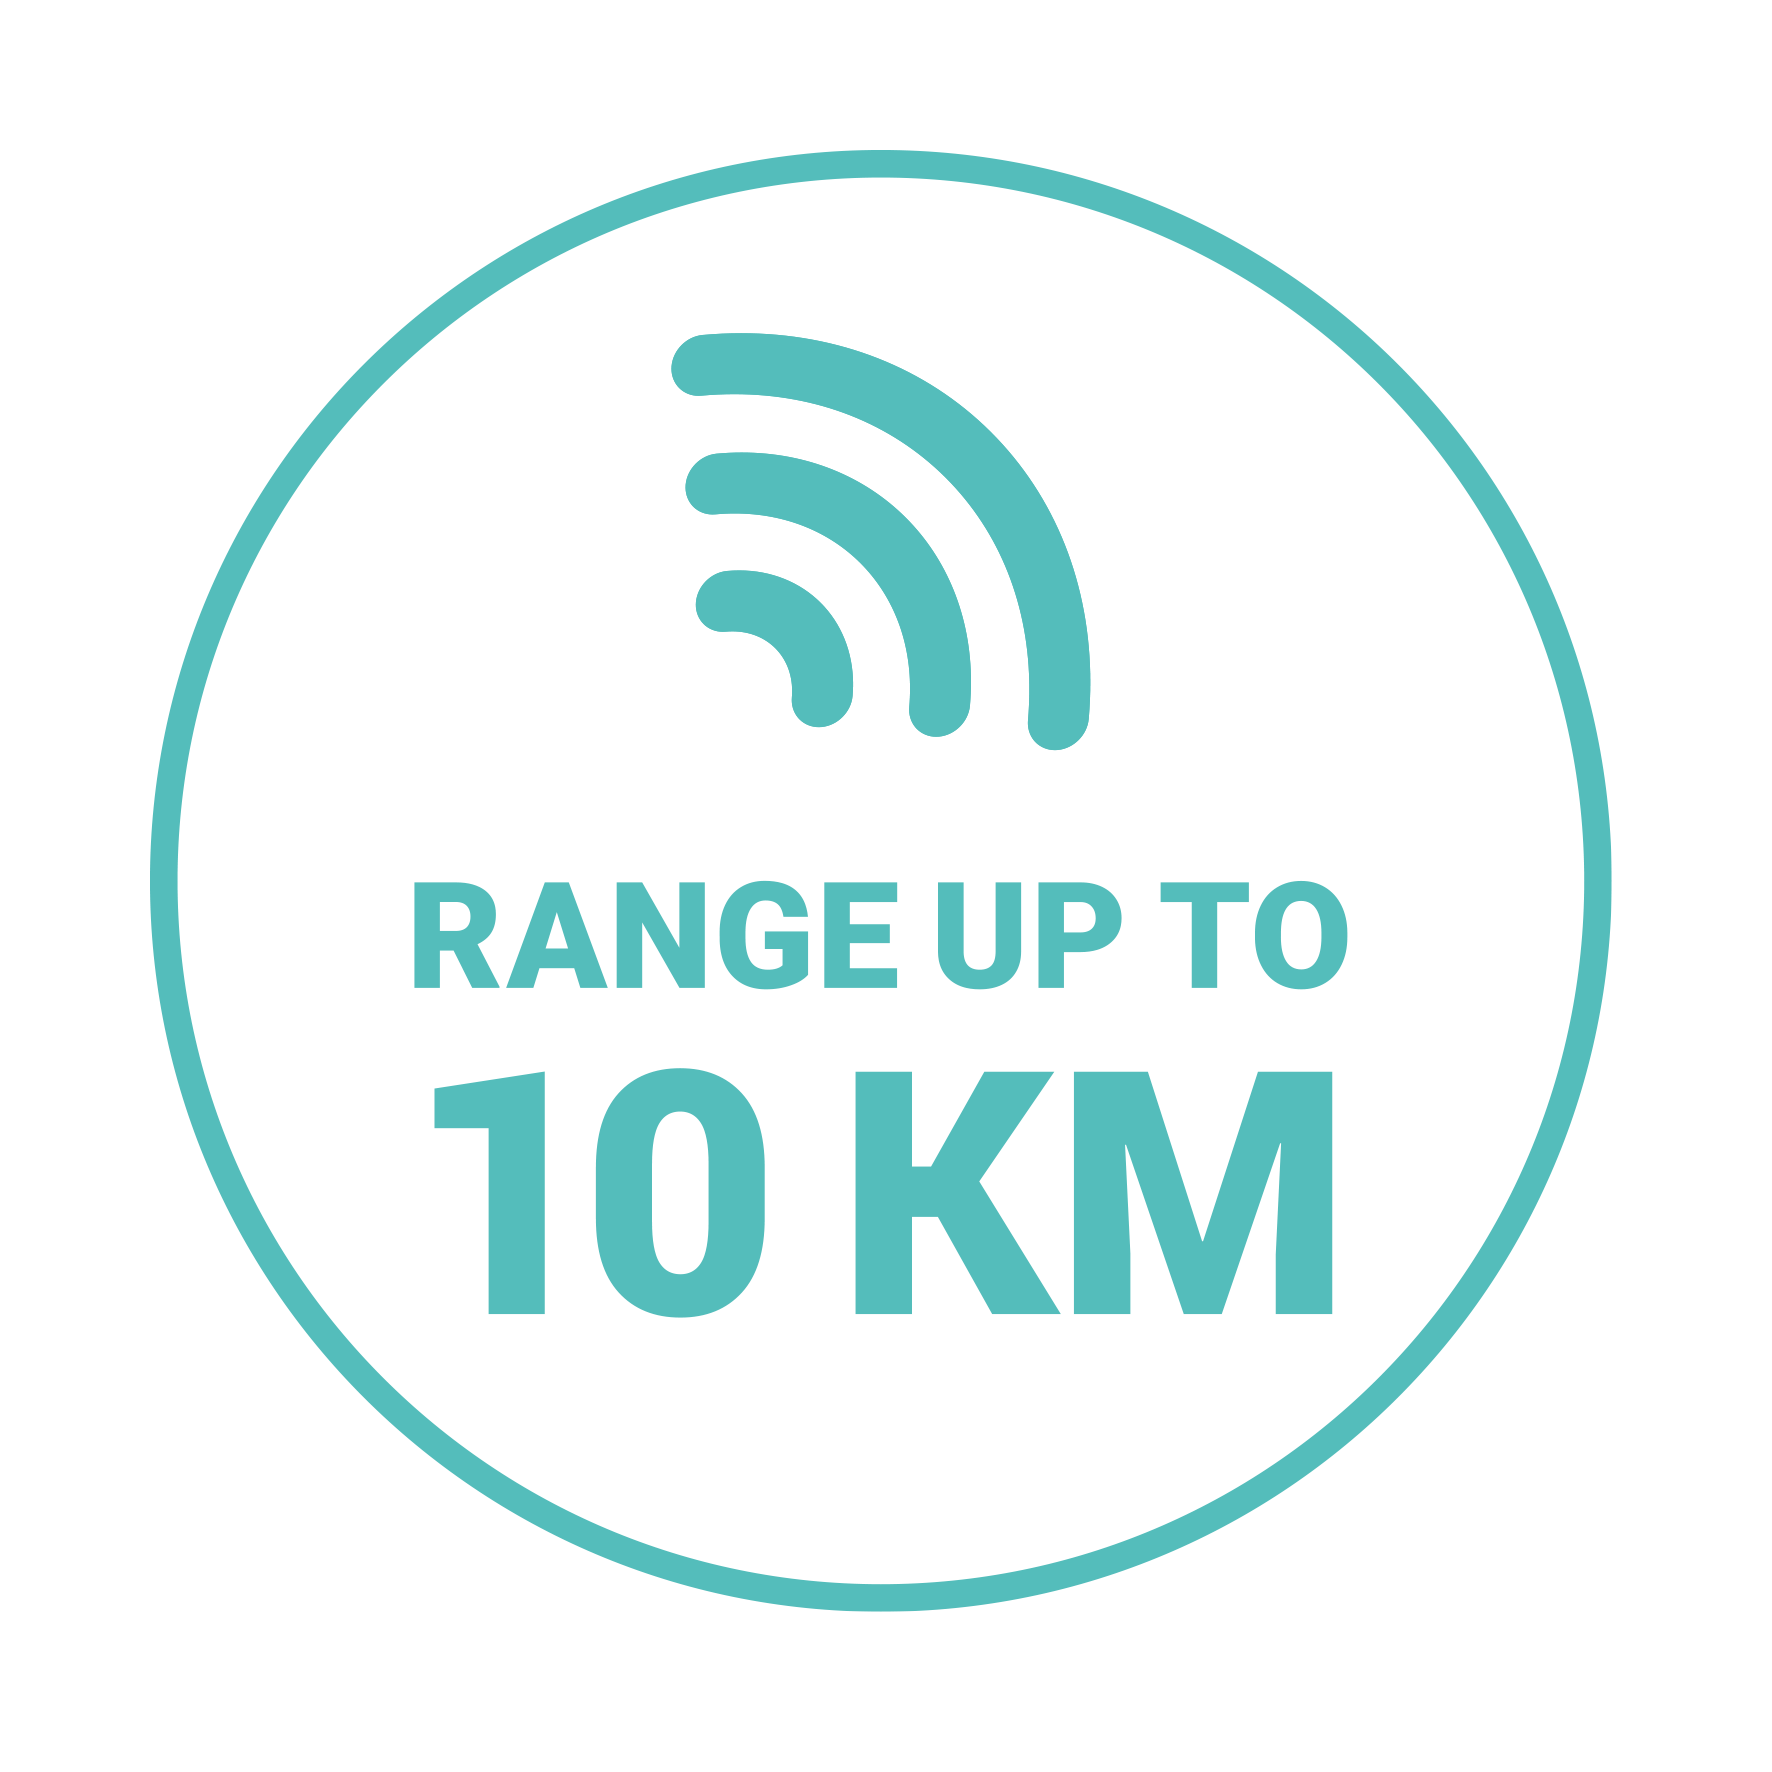 Range up to (10 KM)